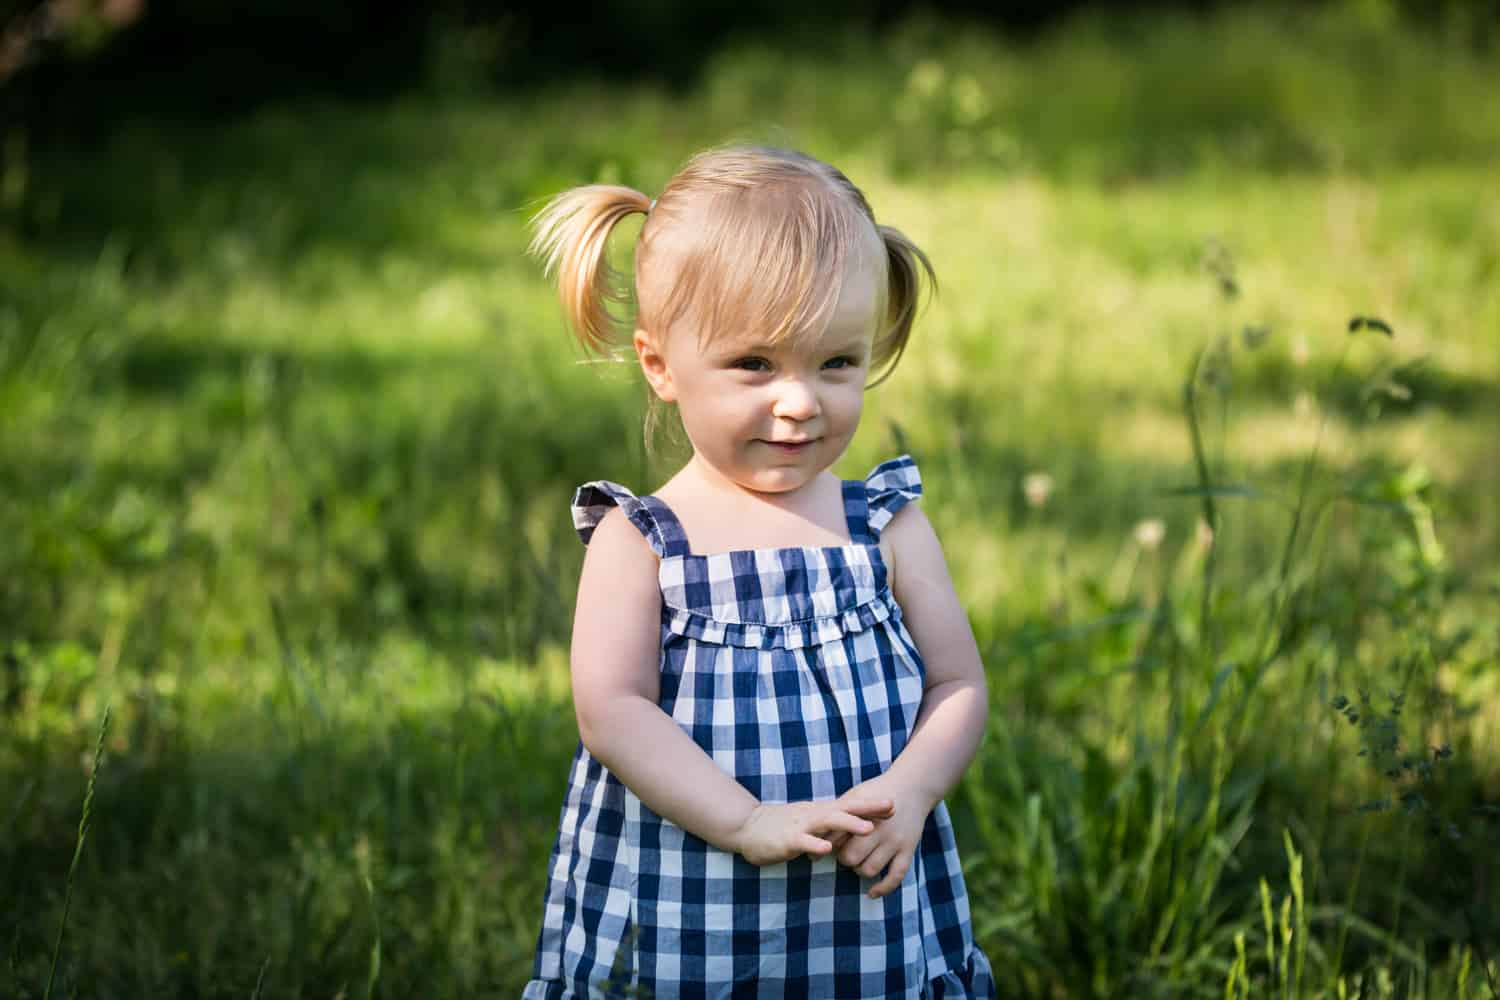 Little girl wearing blue and white gingham dress in Forest Park for an article on toddler portrait tips